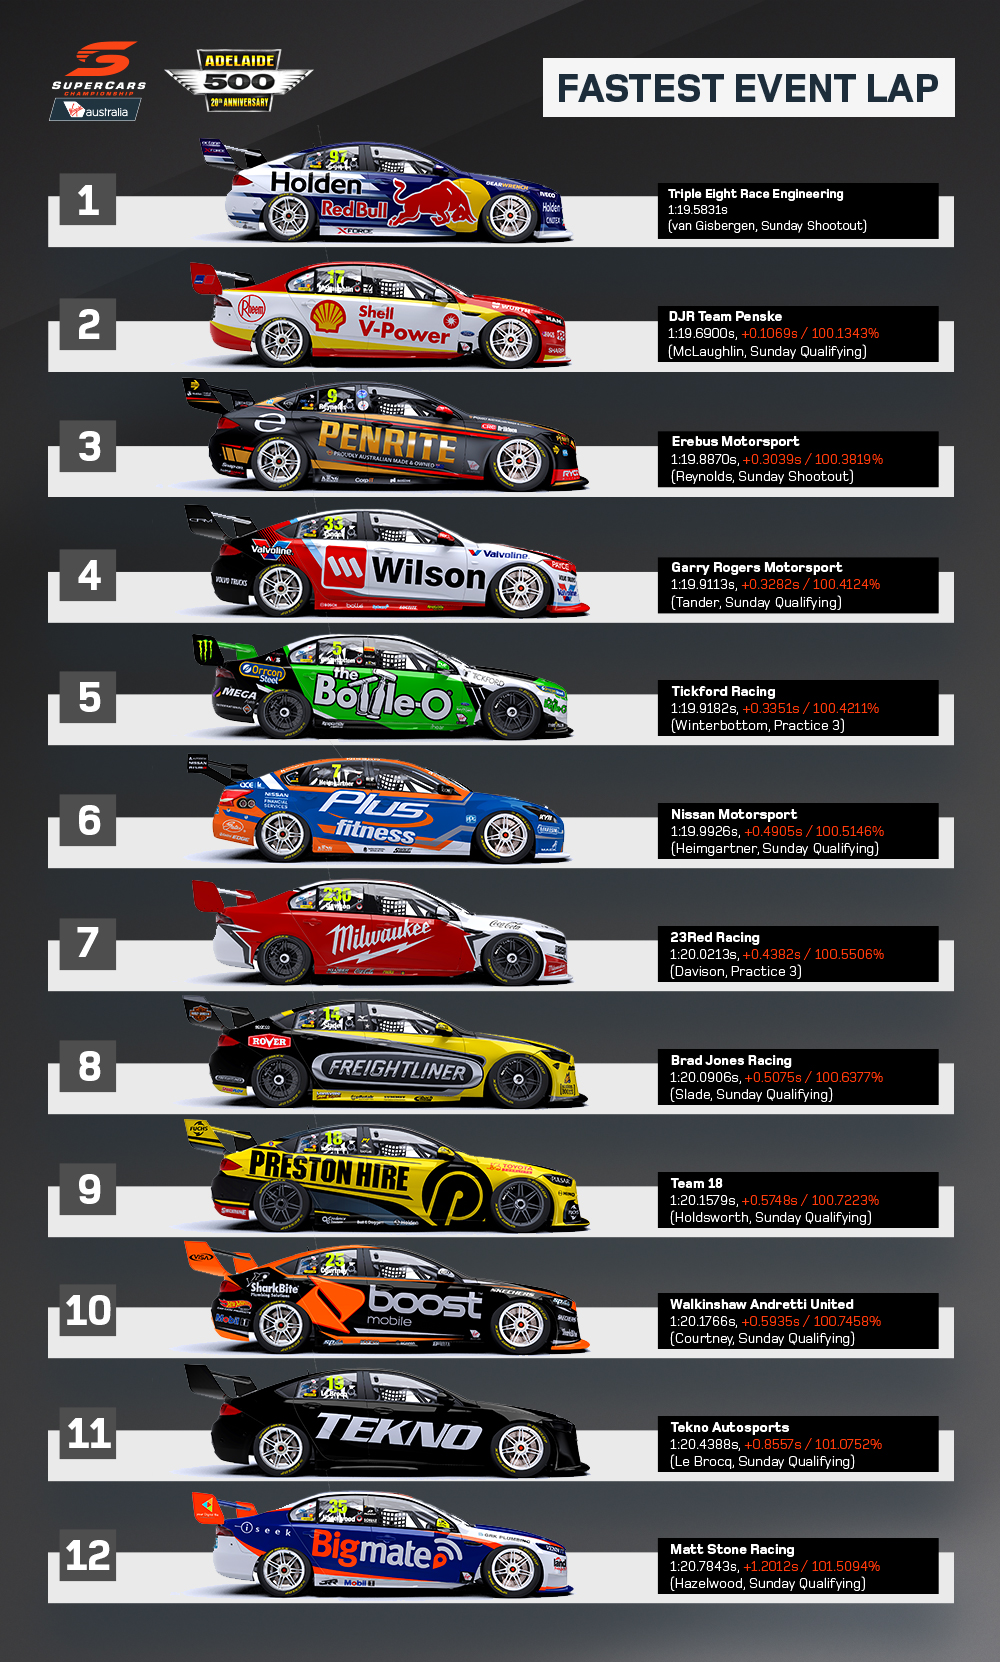 2018 Adelaide 500 - Fastest Event Lap (1)